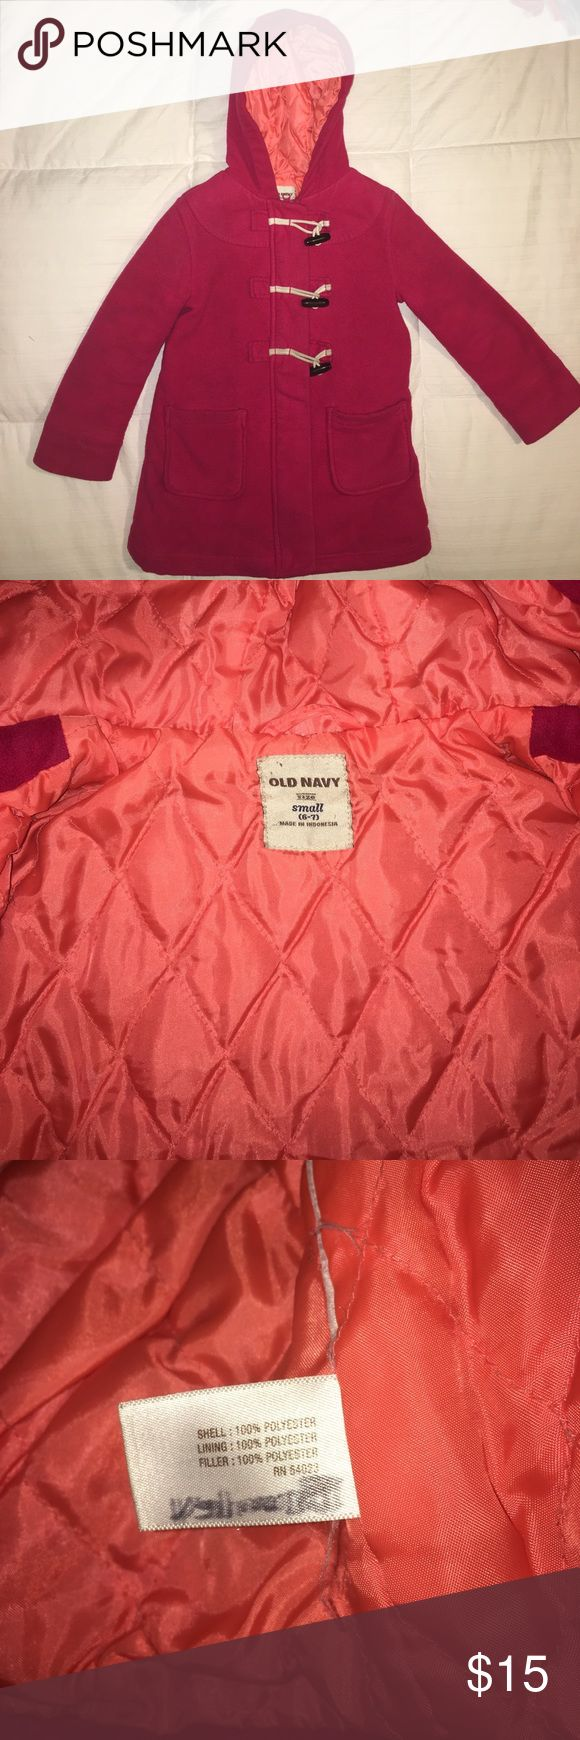 Old Navy Coat Used but in good condition. Minor piling & light dirt stains that are hard to see. Name is scratched out on the inner tag. Size is 6/7 but feel this runs small.. more like a 5/6. Old Navy Jackets & Coats Pea Coats